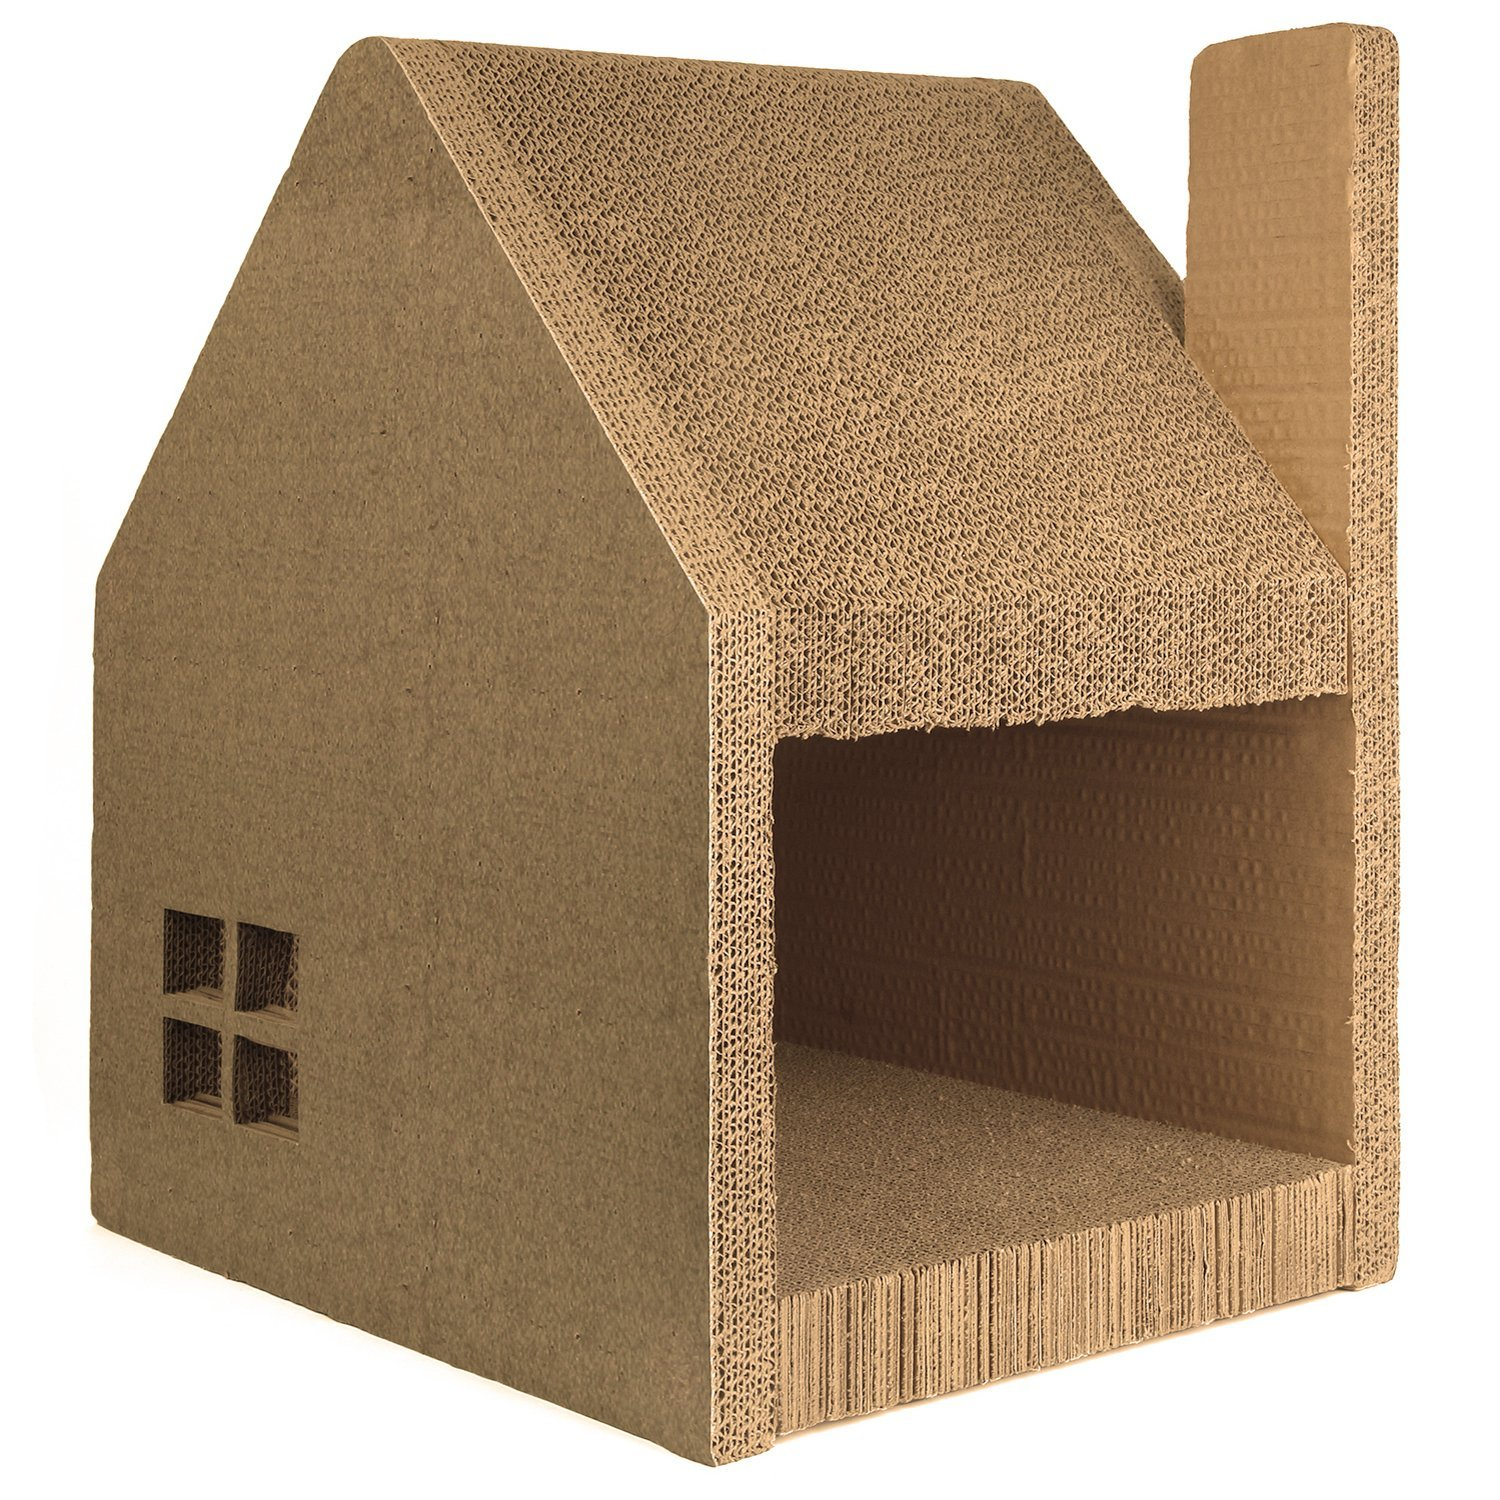 Cardboard Cat House Amazon